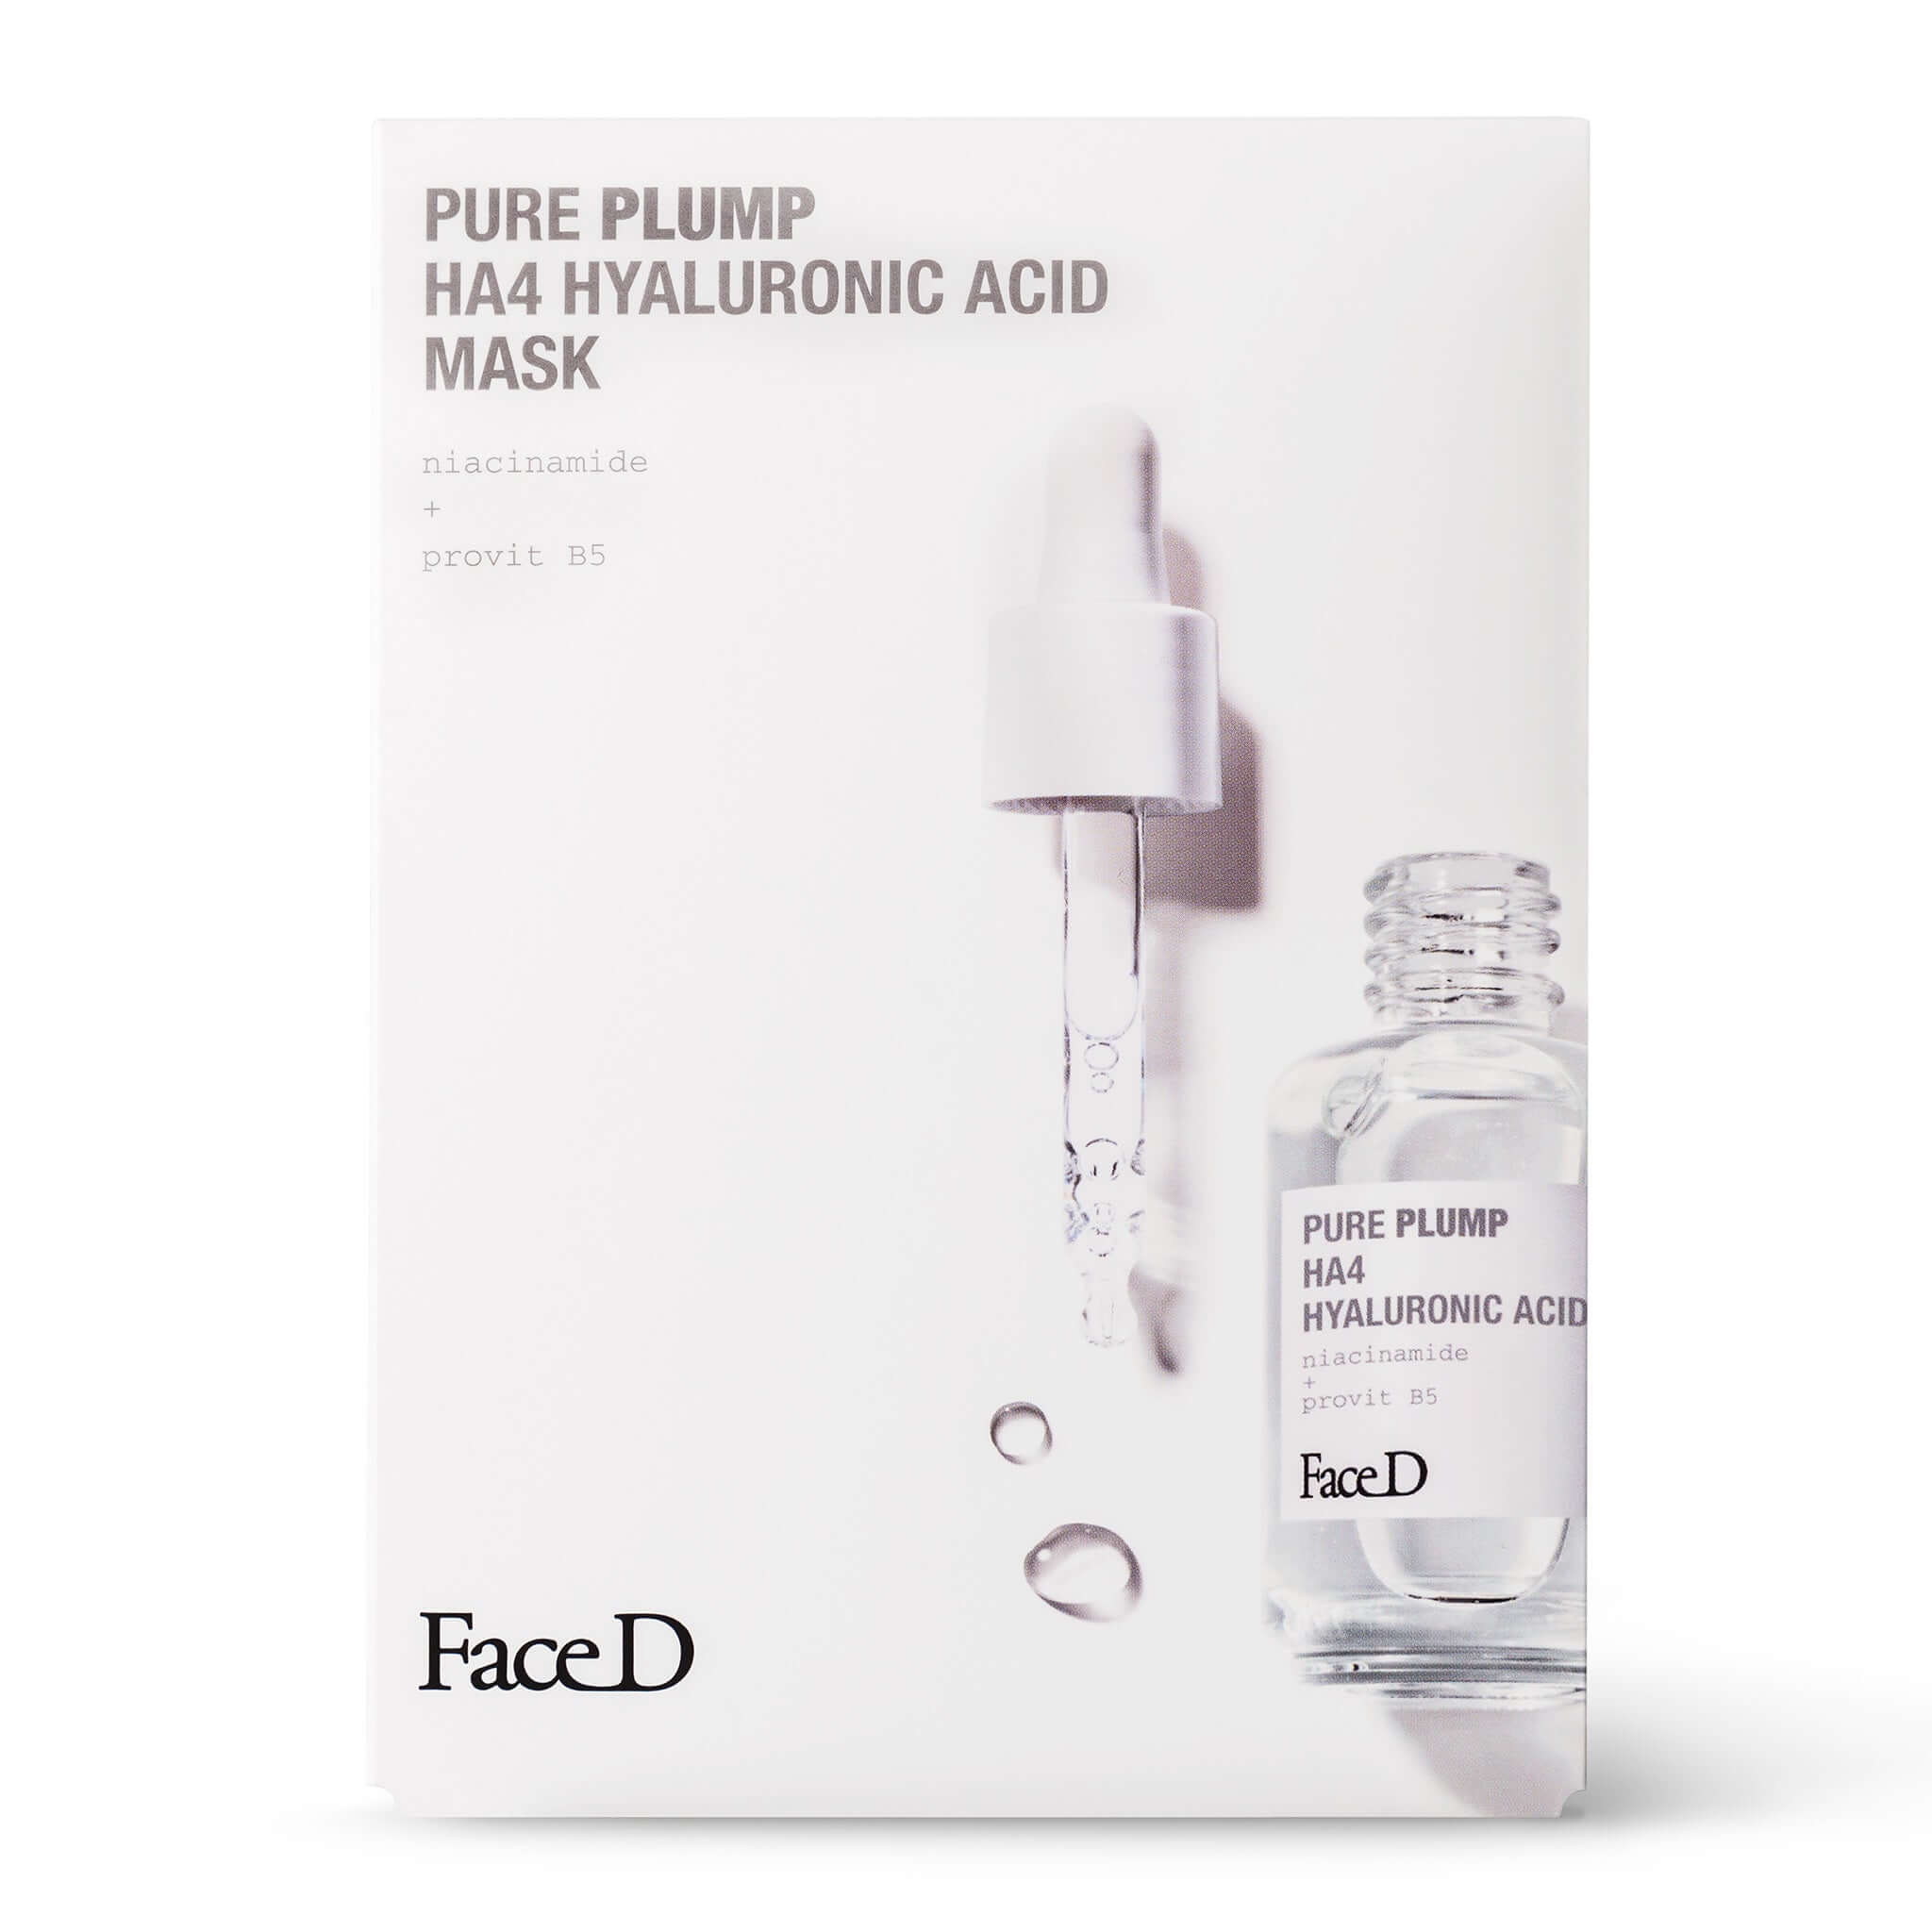 Pure-Plump-Ha4-Hyaluronic-Acid-Face-Mask-5-Pieces-FaceD-Moisturisers || Maschera-Viso-acido-ialuronico-Pure-Plump-HA4-5-pezzi-FaceD-idratazione